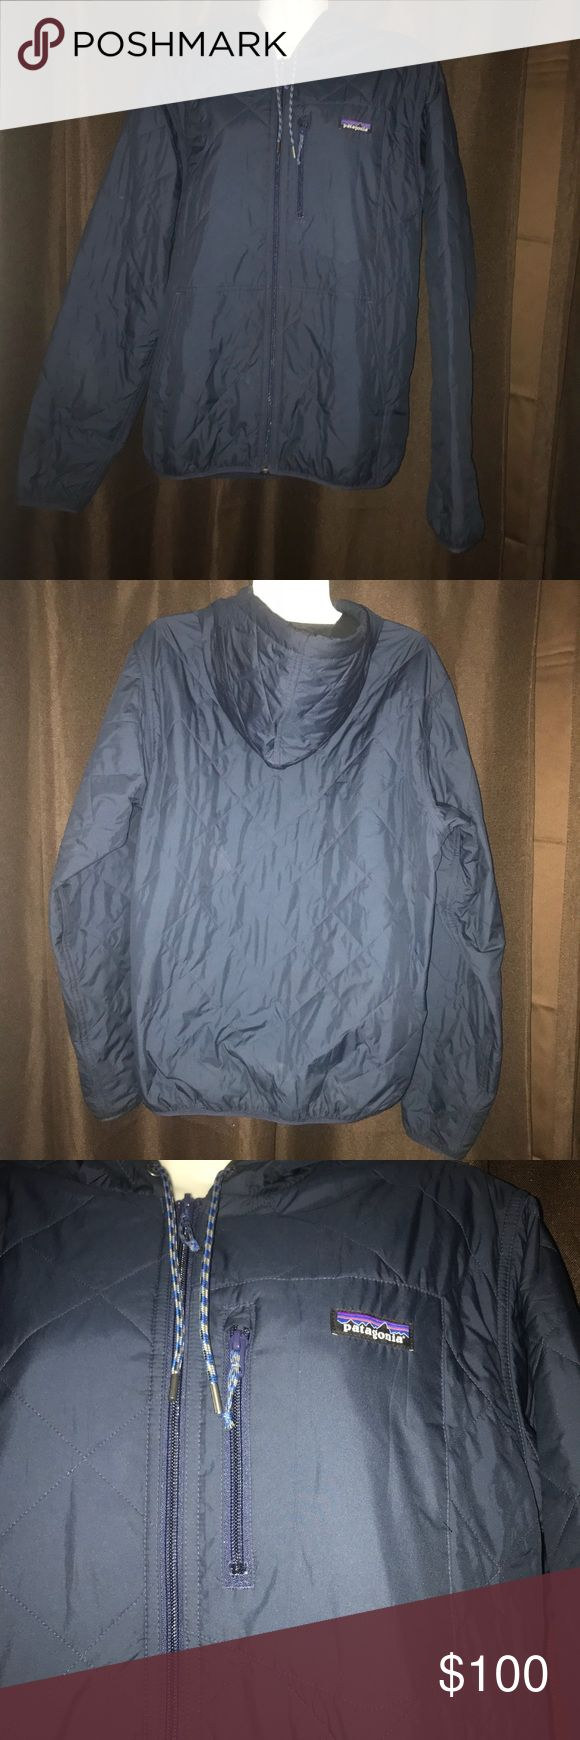 💙🌟PATAGONIA MENS JACKET Patagonia men's jacket! Very comfy, great condition & hardly worn! Make me an offer 🙂 Patagonia Jackets & Coats Puffers